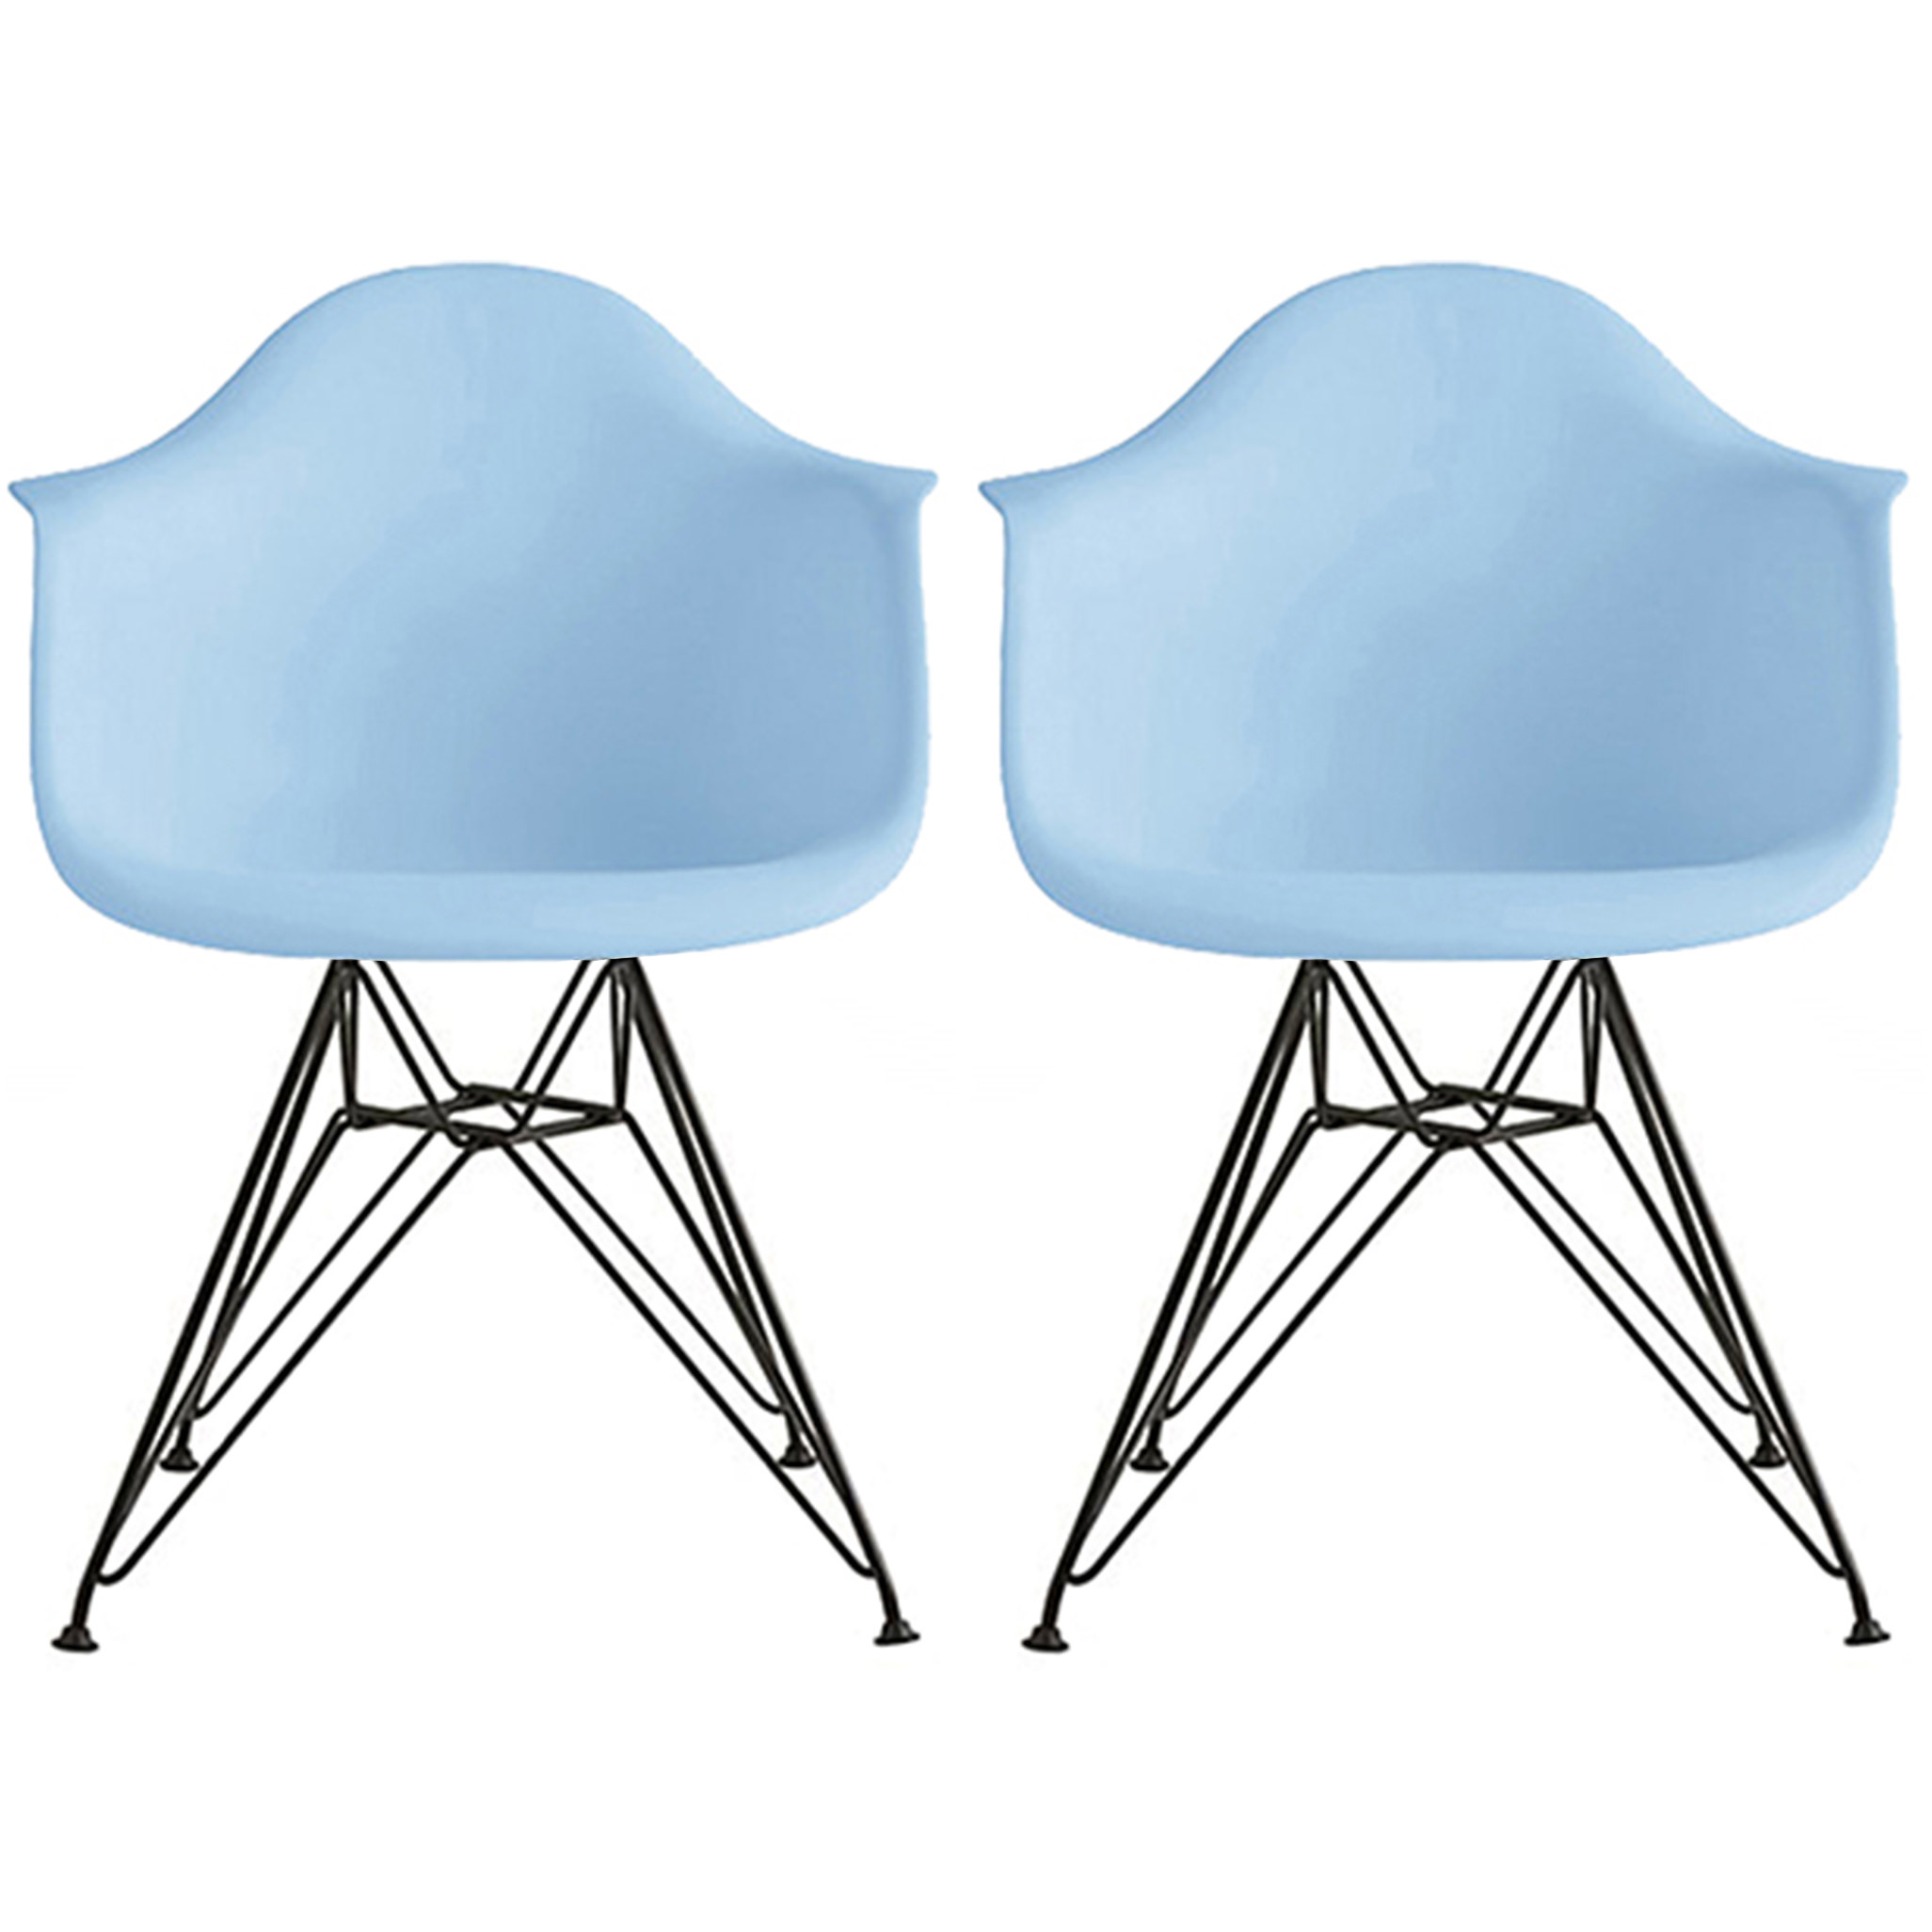 2xhome - Set of 2 (Two) - Blue - Modern Eames Style Armchair Dining Chair Black Wire Leg Eiffel Dining Room Chair with Arm for Living Room Dining Room